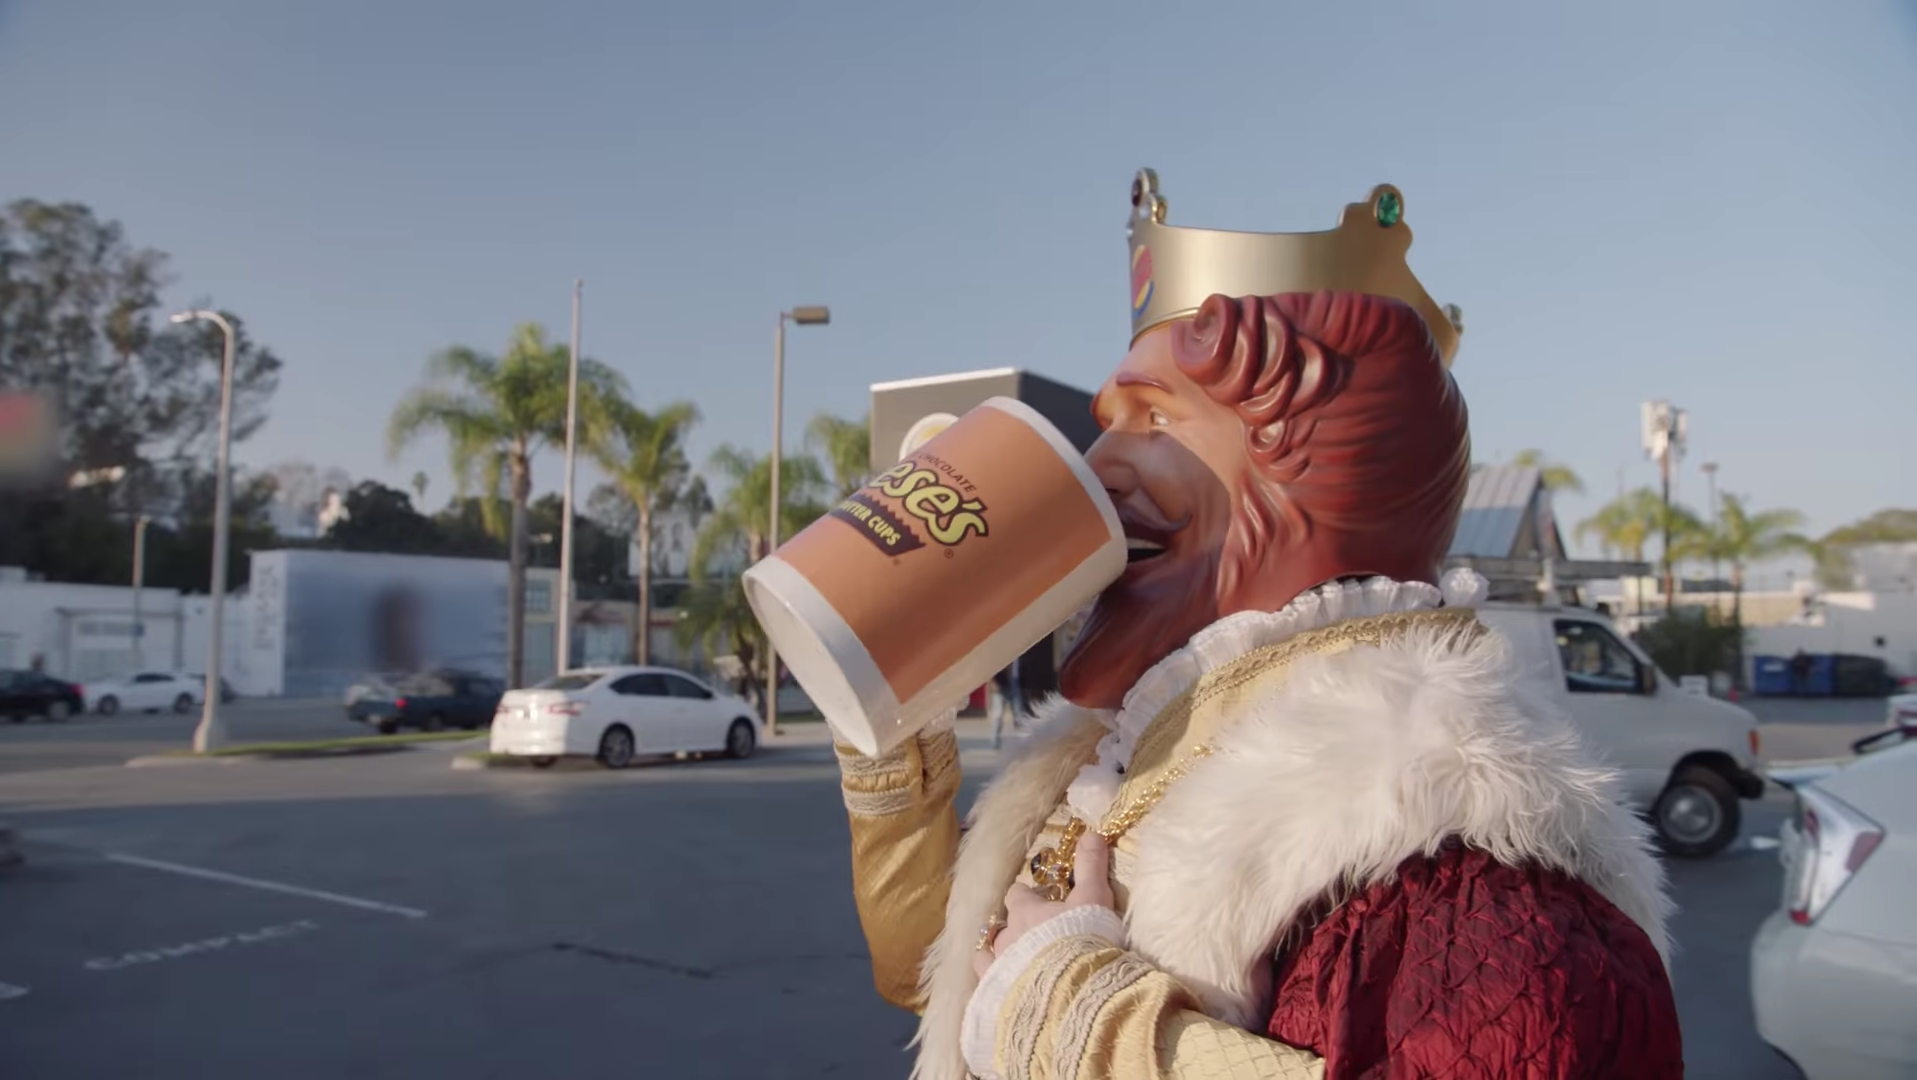 Burger King Takes Potshot at US FCC With Internet Neutrality Commercial